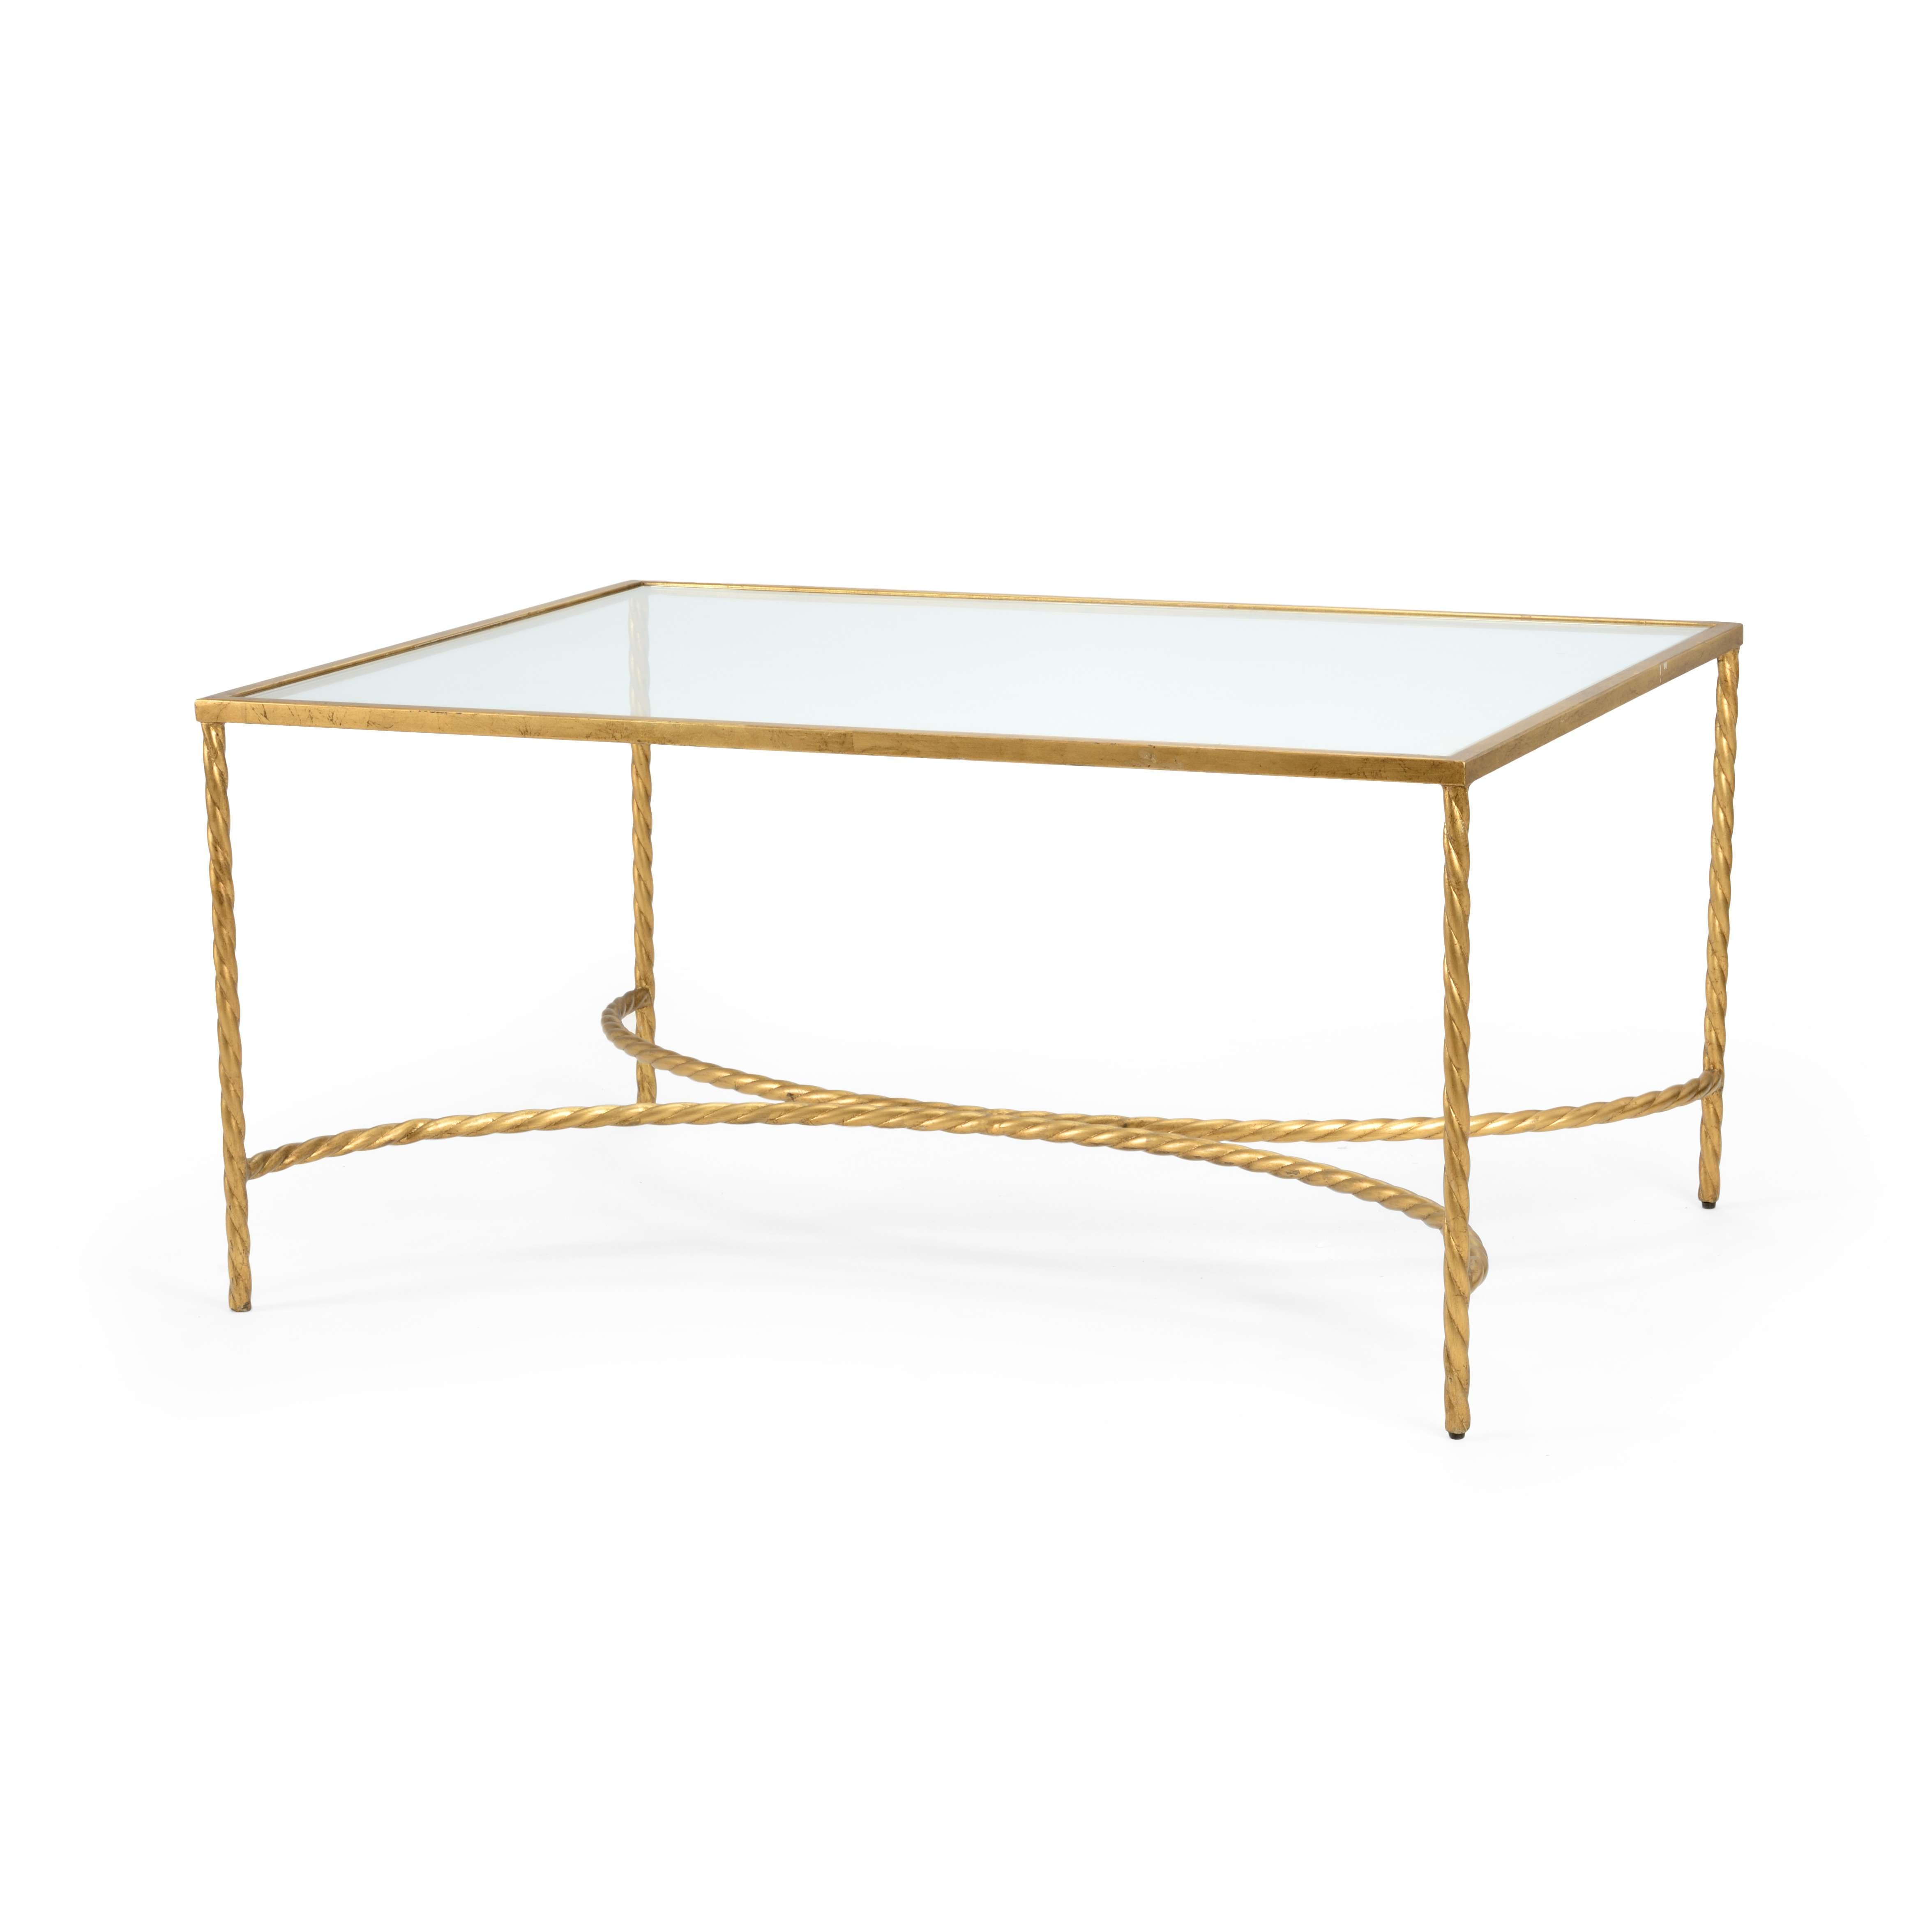 Fashionable Glass Gold Coffee Tables With Regard To Coffee Tables : Round Glass Coffee Table Marble Gold Side Brass (View 7 of 20)